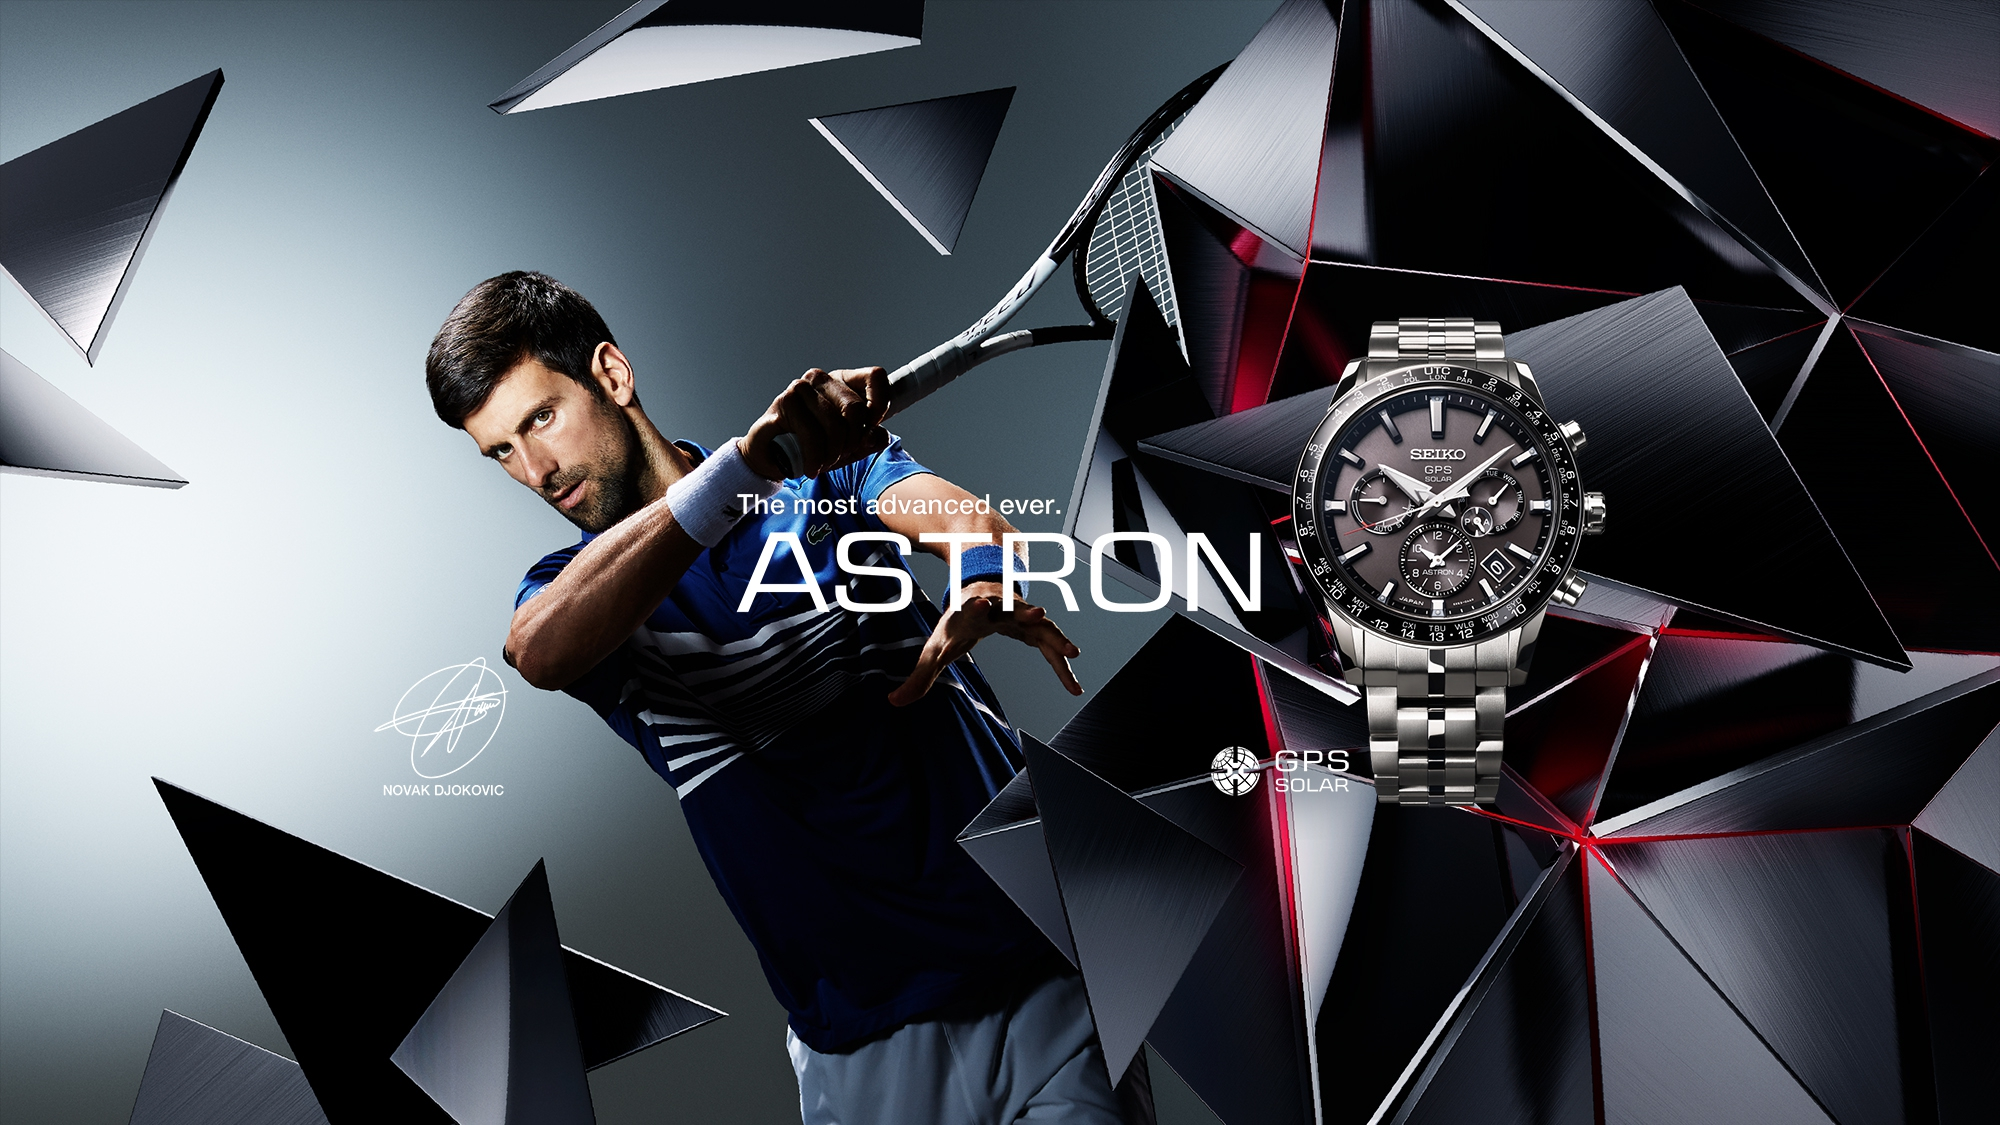 The most advanced ever. Astron